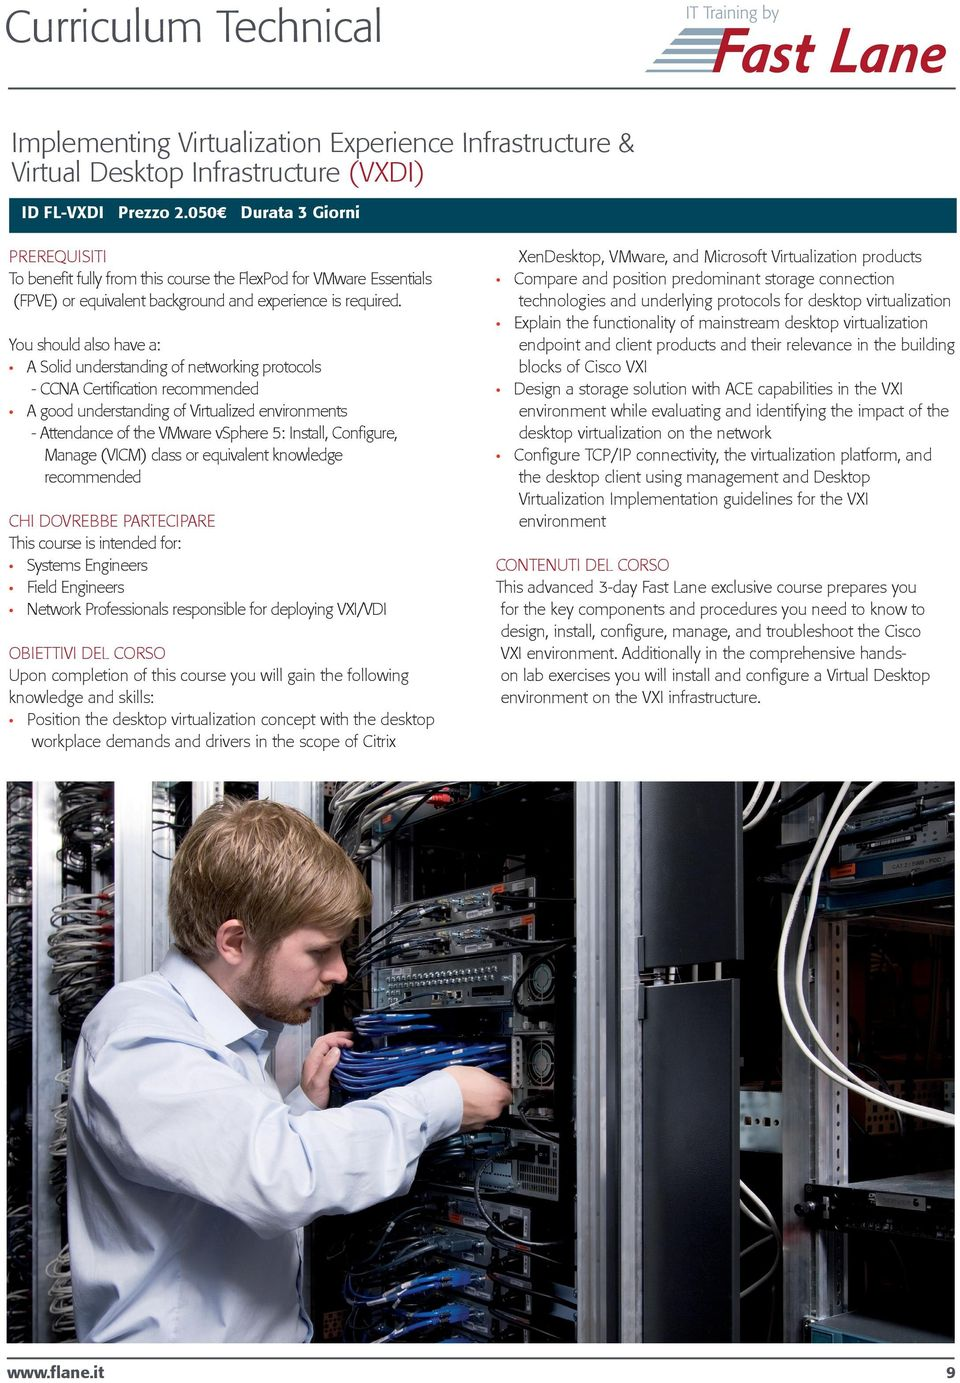 You should also have a: A Solid understanding of networking protocols - CCNA Certification recommended A good understanding of Virtualized environments - Attendance of the VMware vsphere 5: Install,